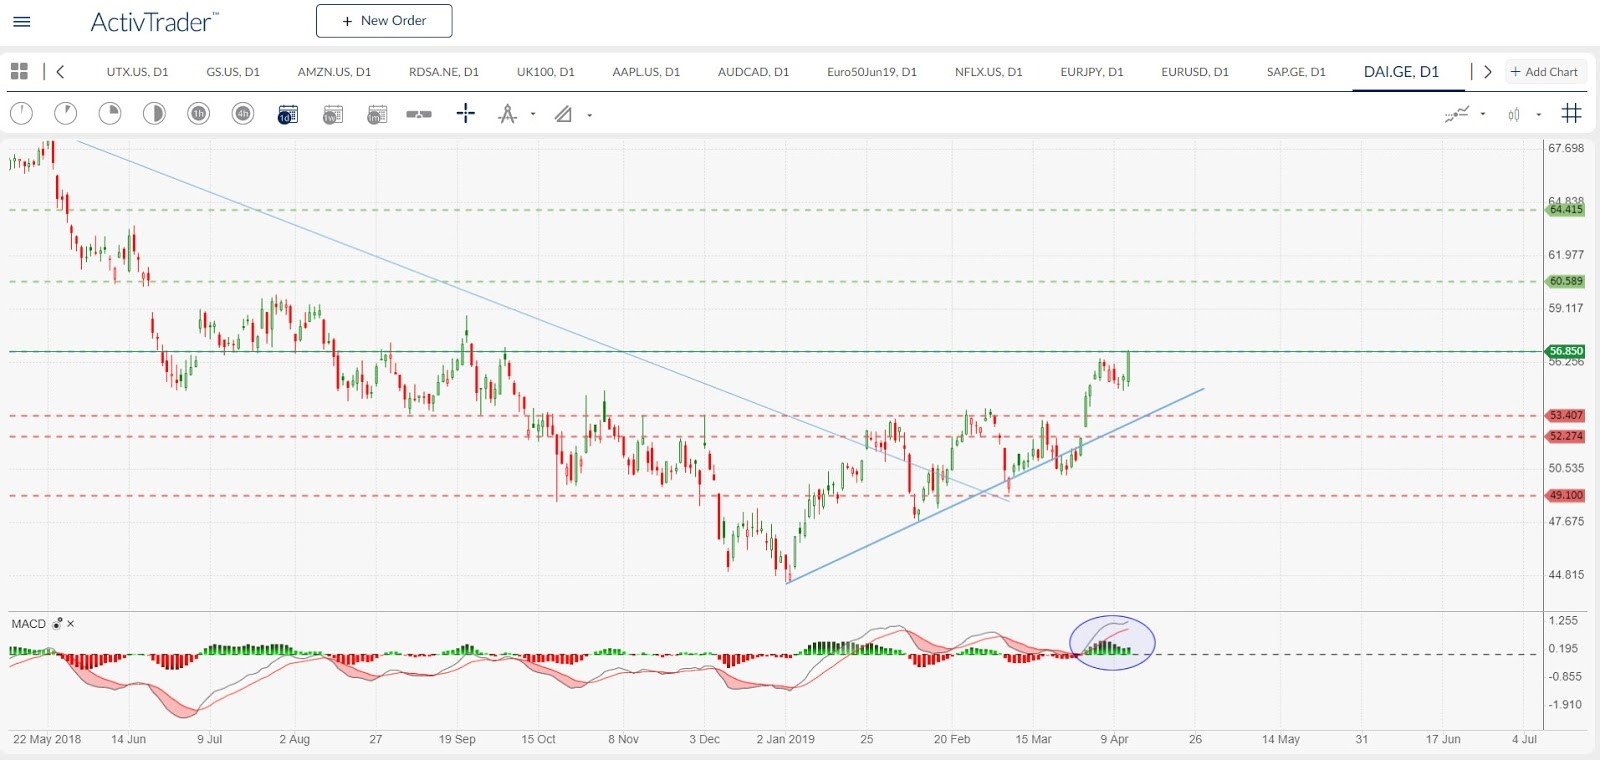 DAI.DE Daily Chart | Source: ActivTrader